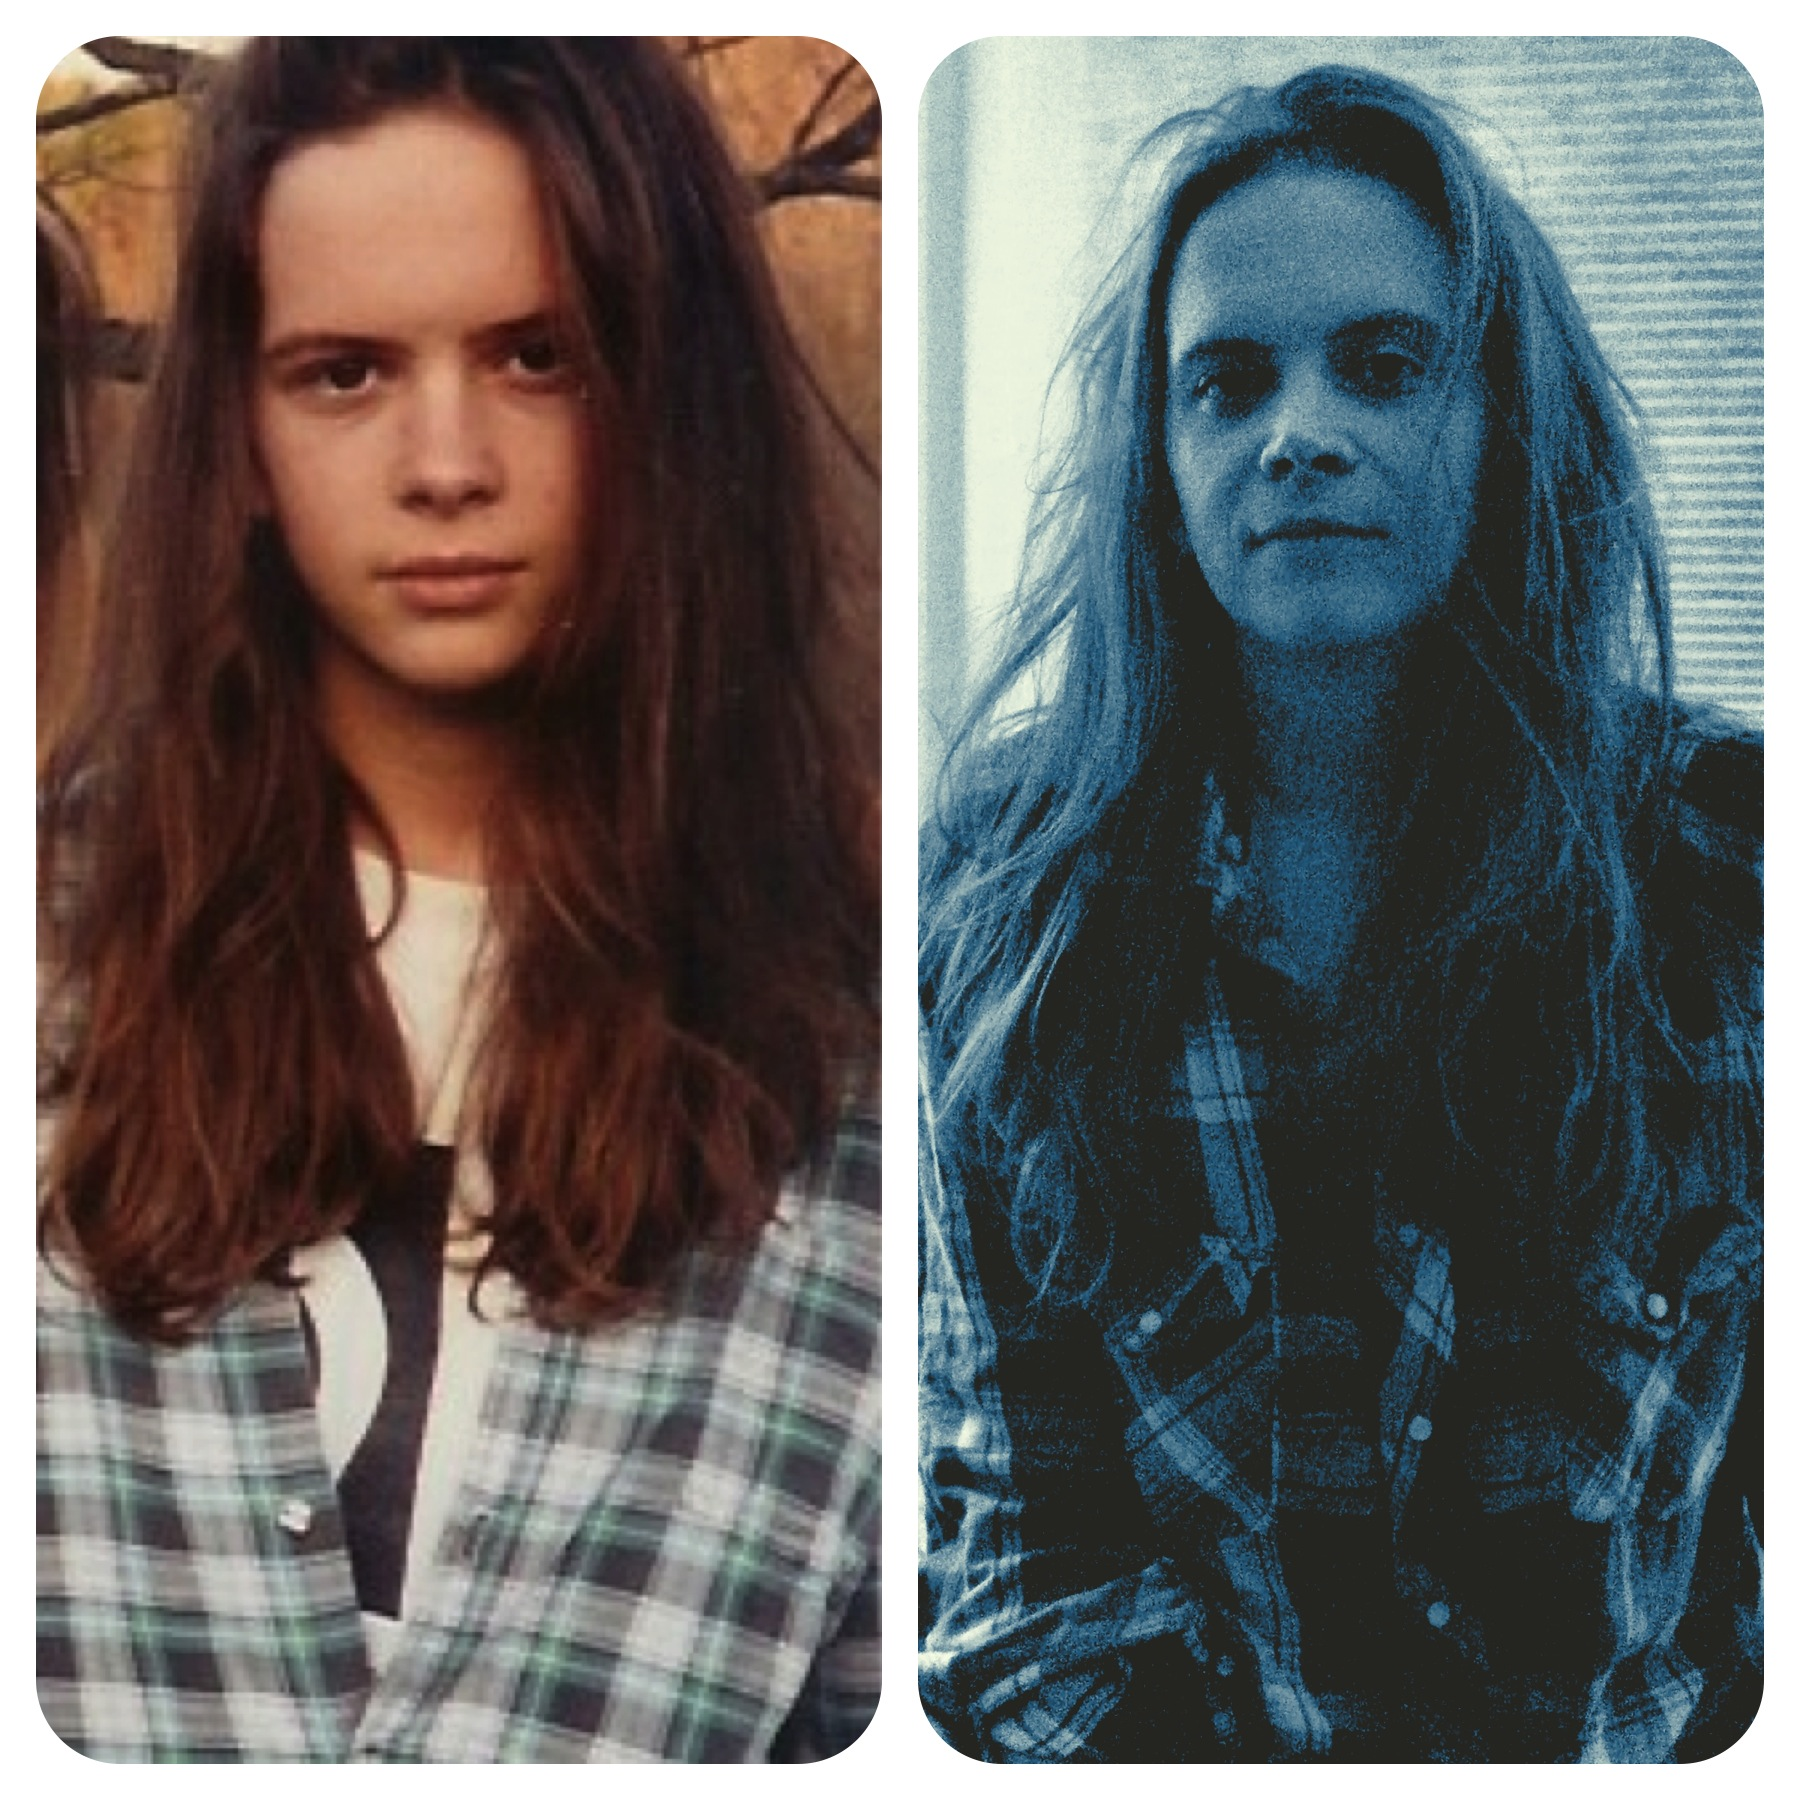 Me at 14 v. Me at 34. Believe it or not there was a decade where my hair was other colors and lengths and I never wore flannel.